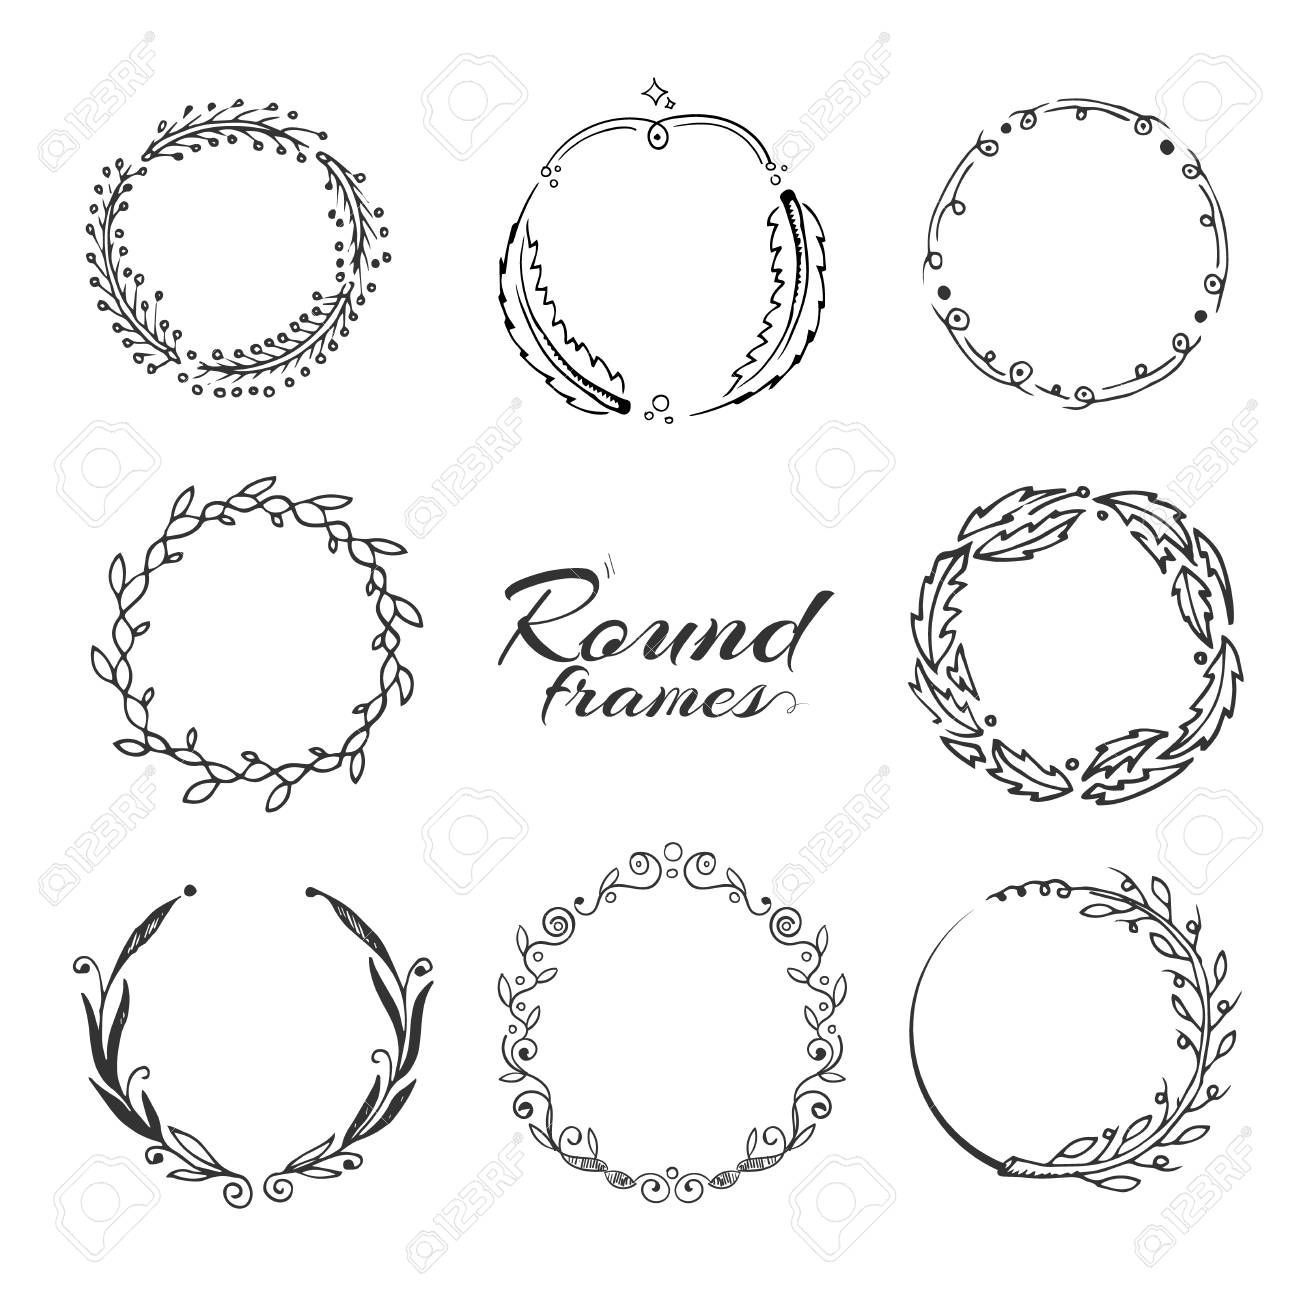 Branch With Leaves Laurel Wreath Floral Circle Frames For Decoration Hand Dra In 2020 Leaf Illustration Laurel Wreath Circle Frames